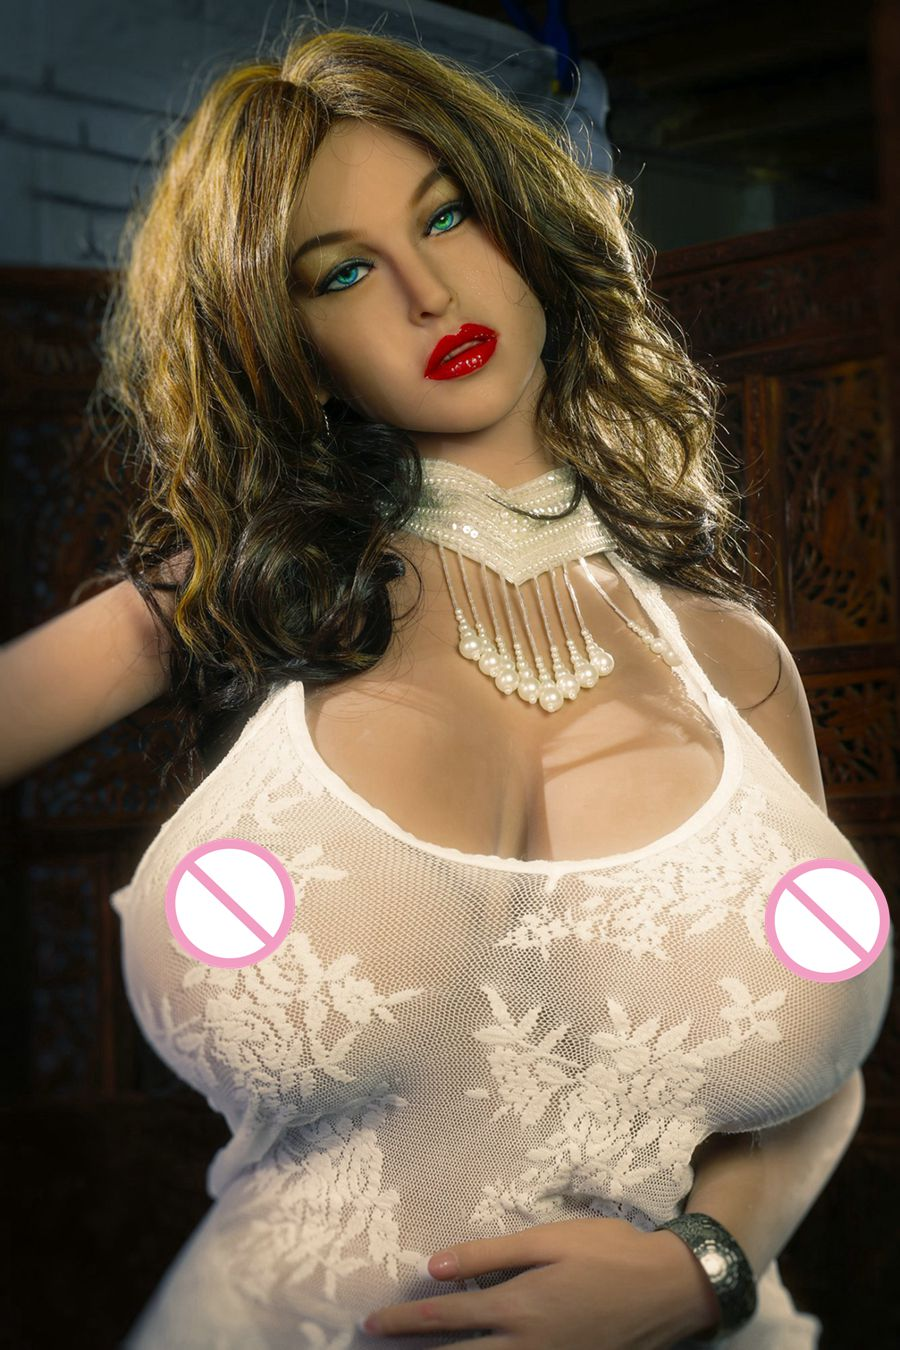 2017 160cm NEW super big breast tits American sex dolls,realistic oral life size European female sex dolls 2016 new realistic life size 100